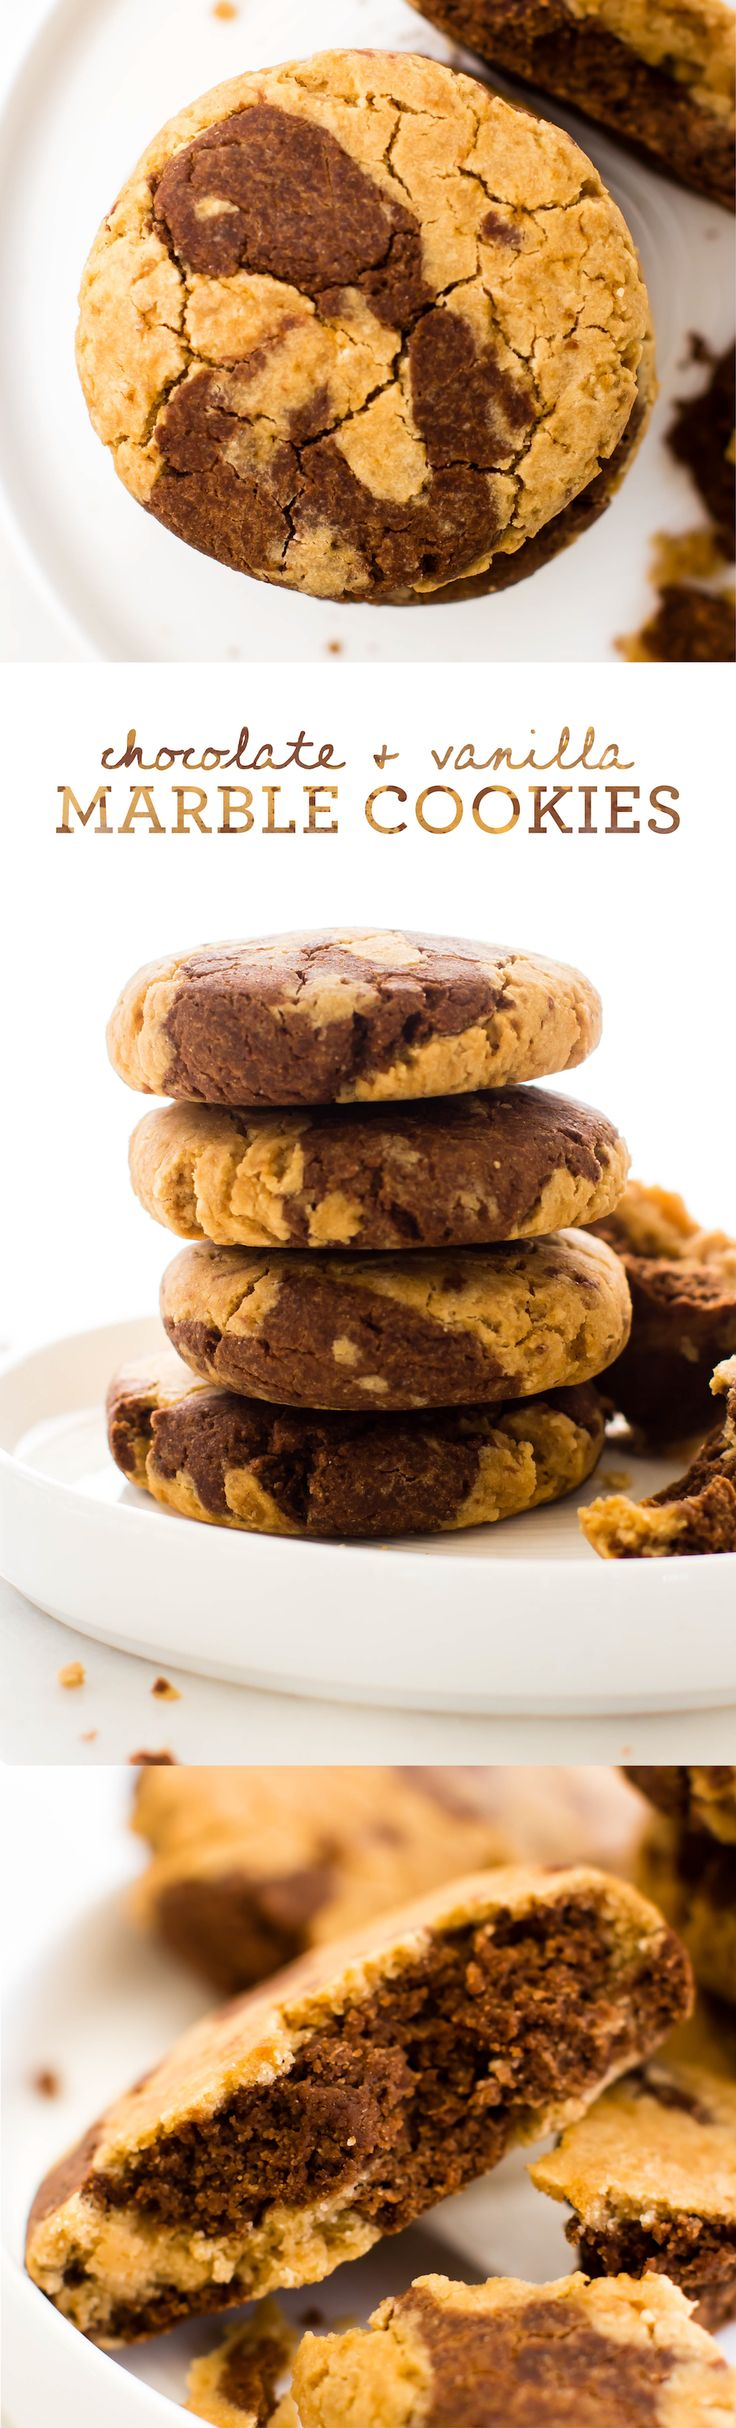 With two kinds of cookie in every bite, these Chocolate Vanilla Marble Cookies are swirly soft-baked snacking at it's sweetest! Vegan, gluten-free, oil-free. via @Natalie   Feasting on Fruit